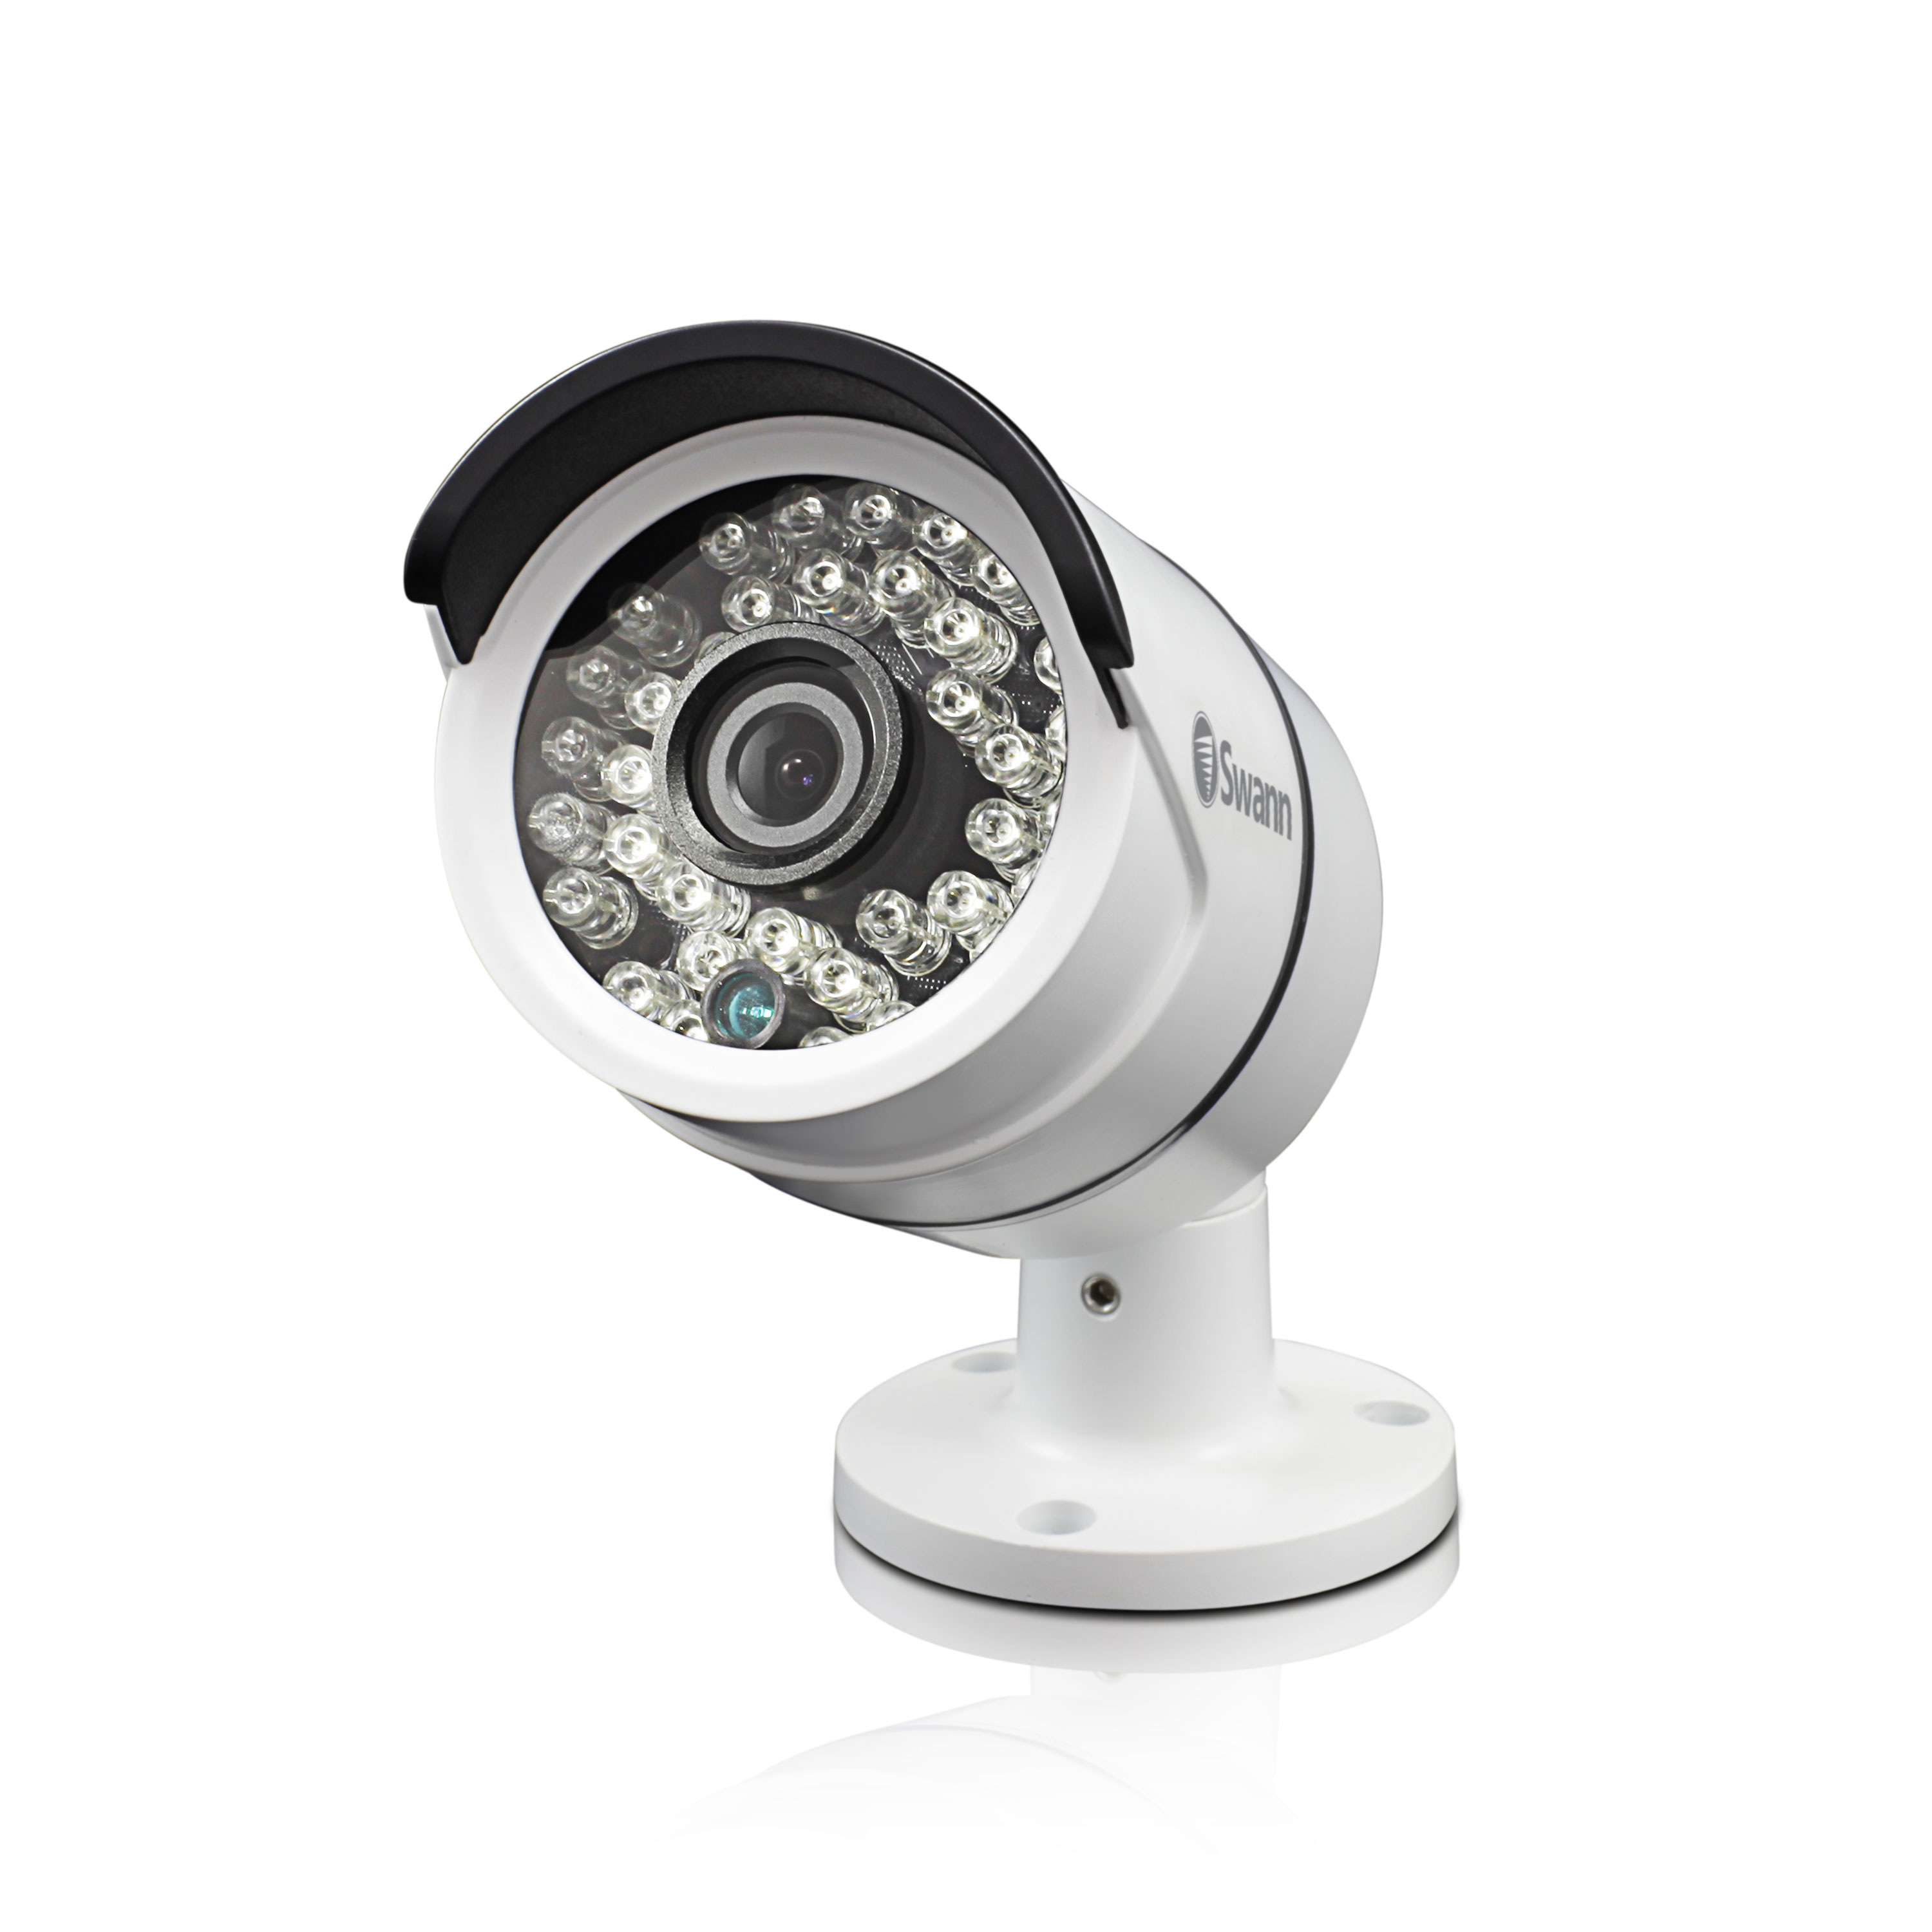 security cameras buy online today at swann com us pro h850 720p multi purpose day night security camera night vision